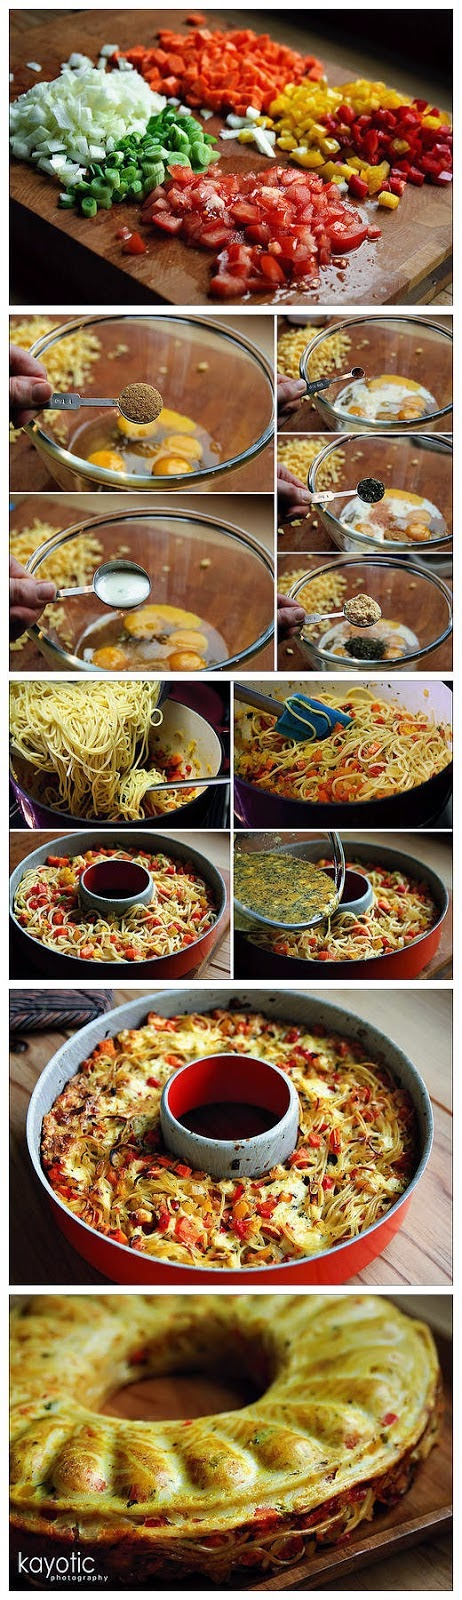 How To Make Spaghetti Pie